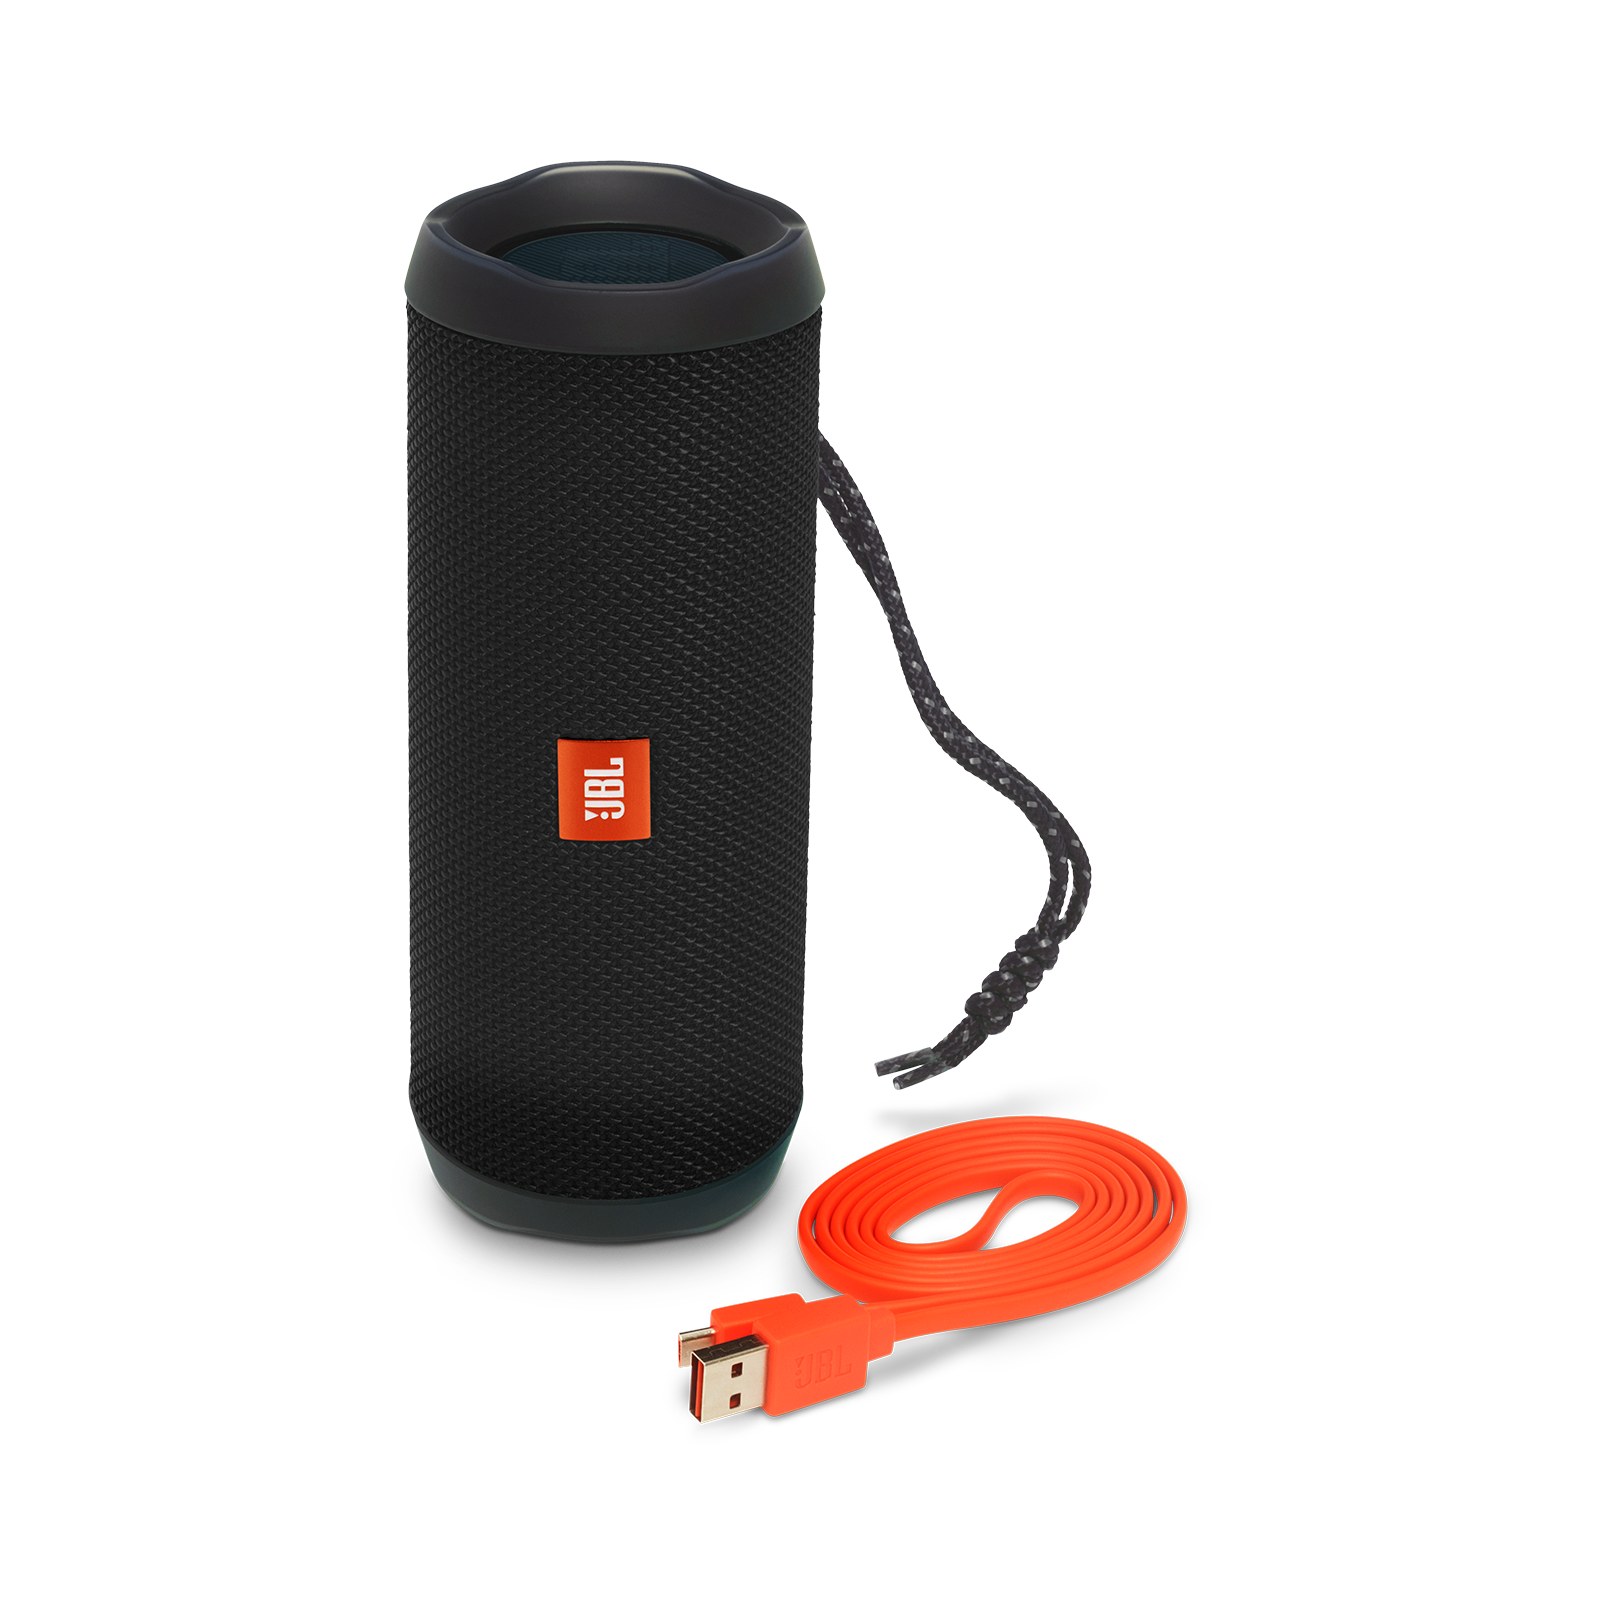 JBL Flip 4 - Black - A full-featured waterproof portable Bluetooth speaker with surprisingly powerful sound. - Detailshot 1